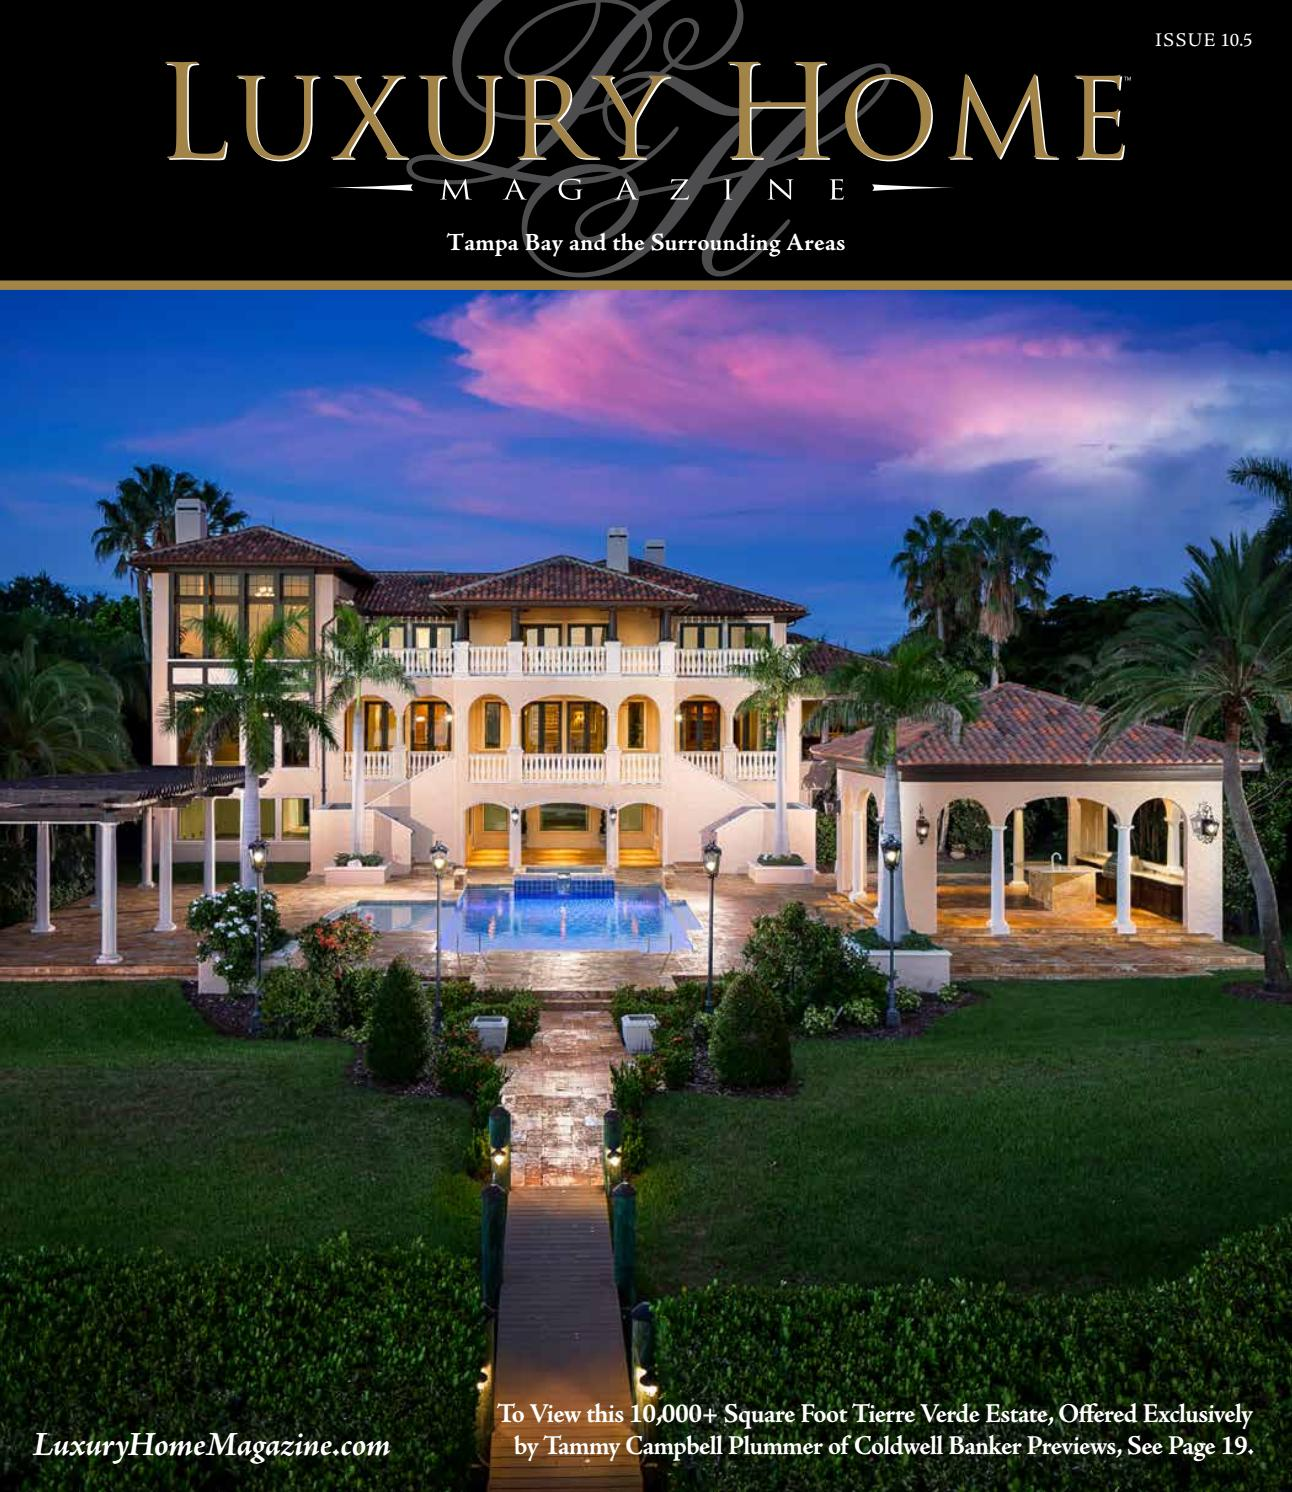 A Luxury Mansion L: Luxury Home Magazine Tampa Bay Issue 10.5 By Luxury Home